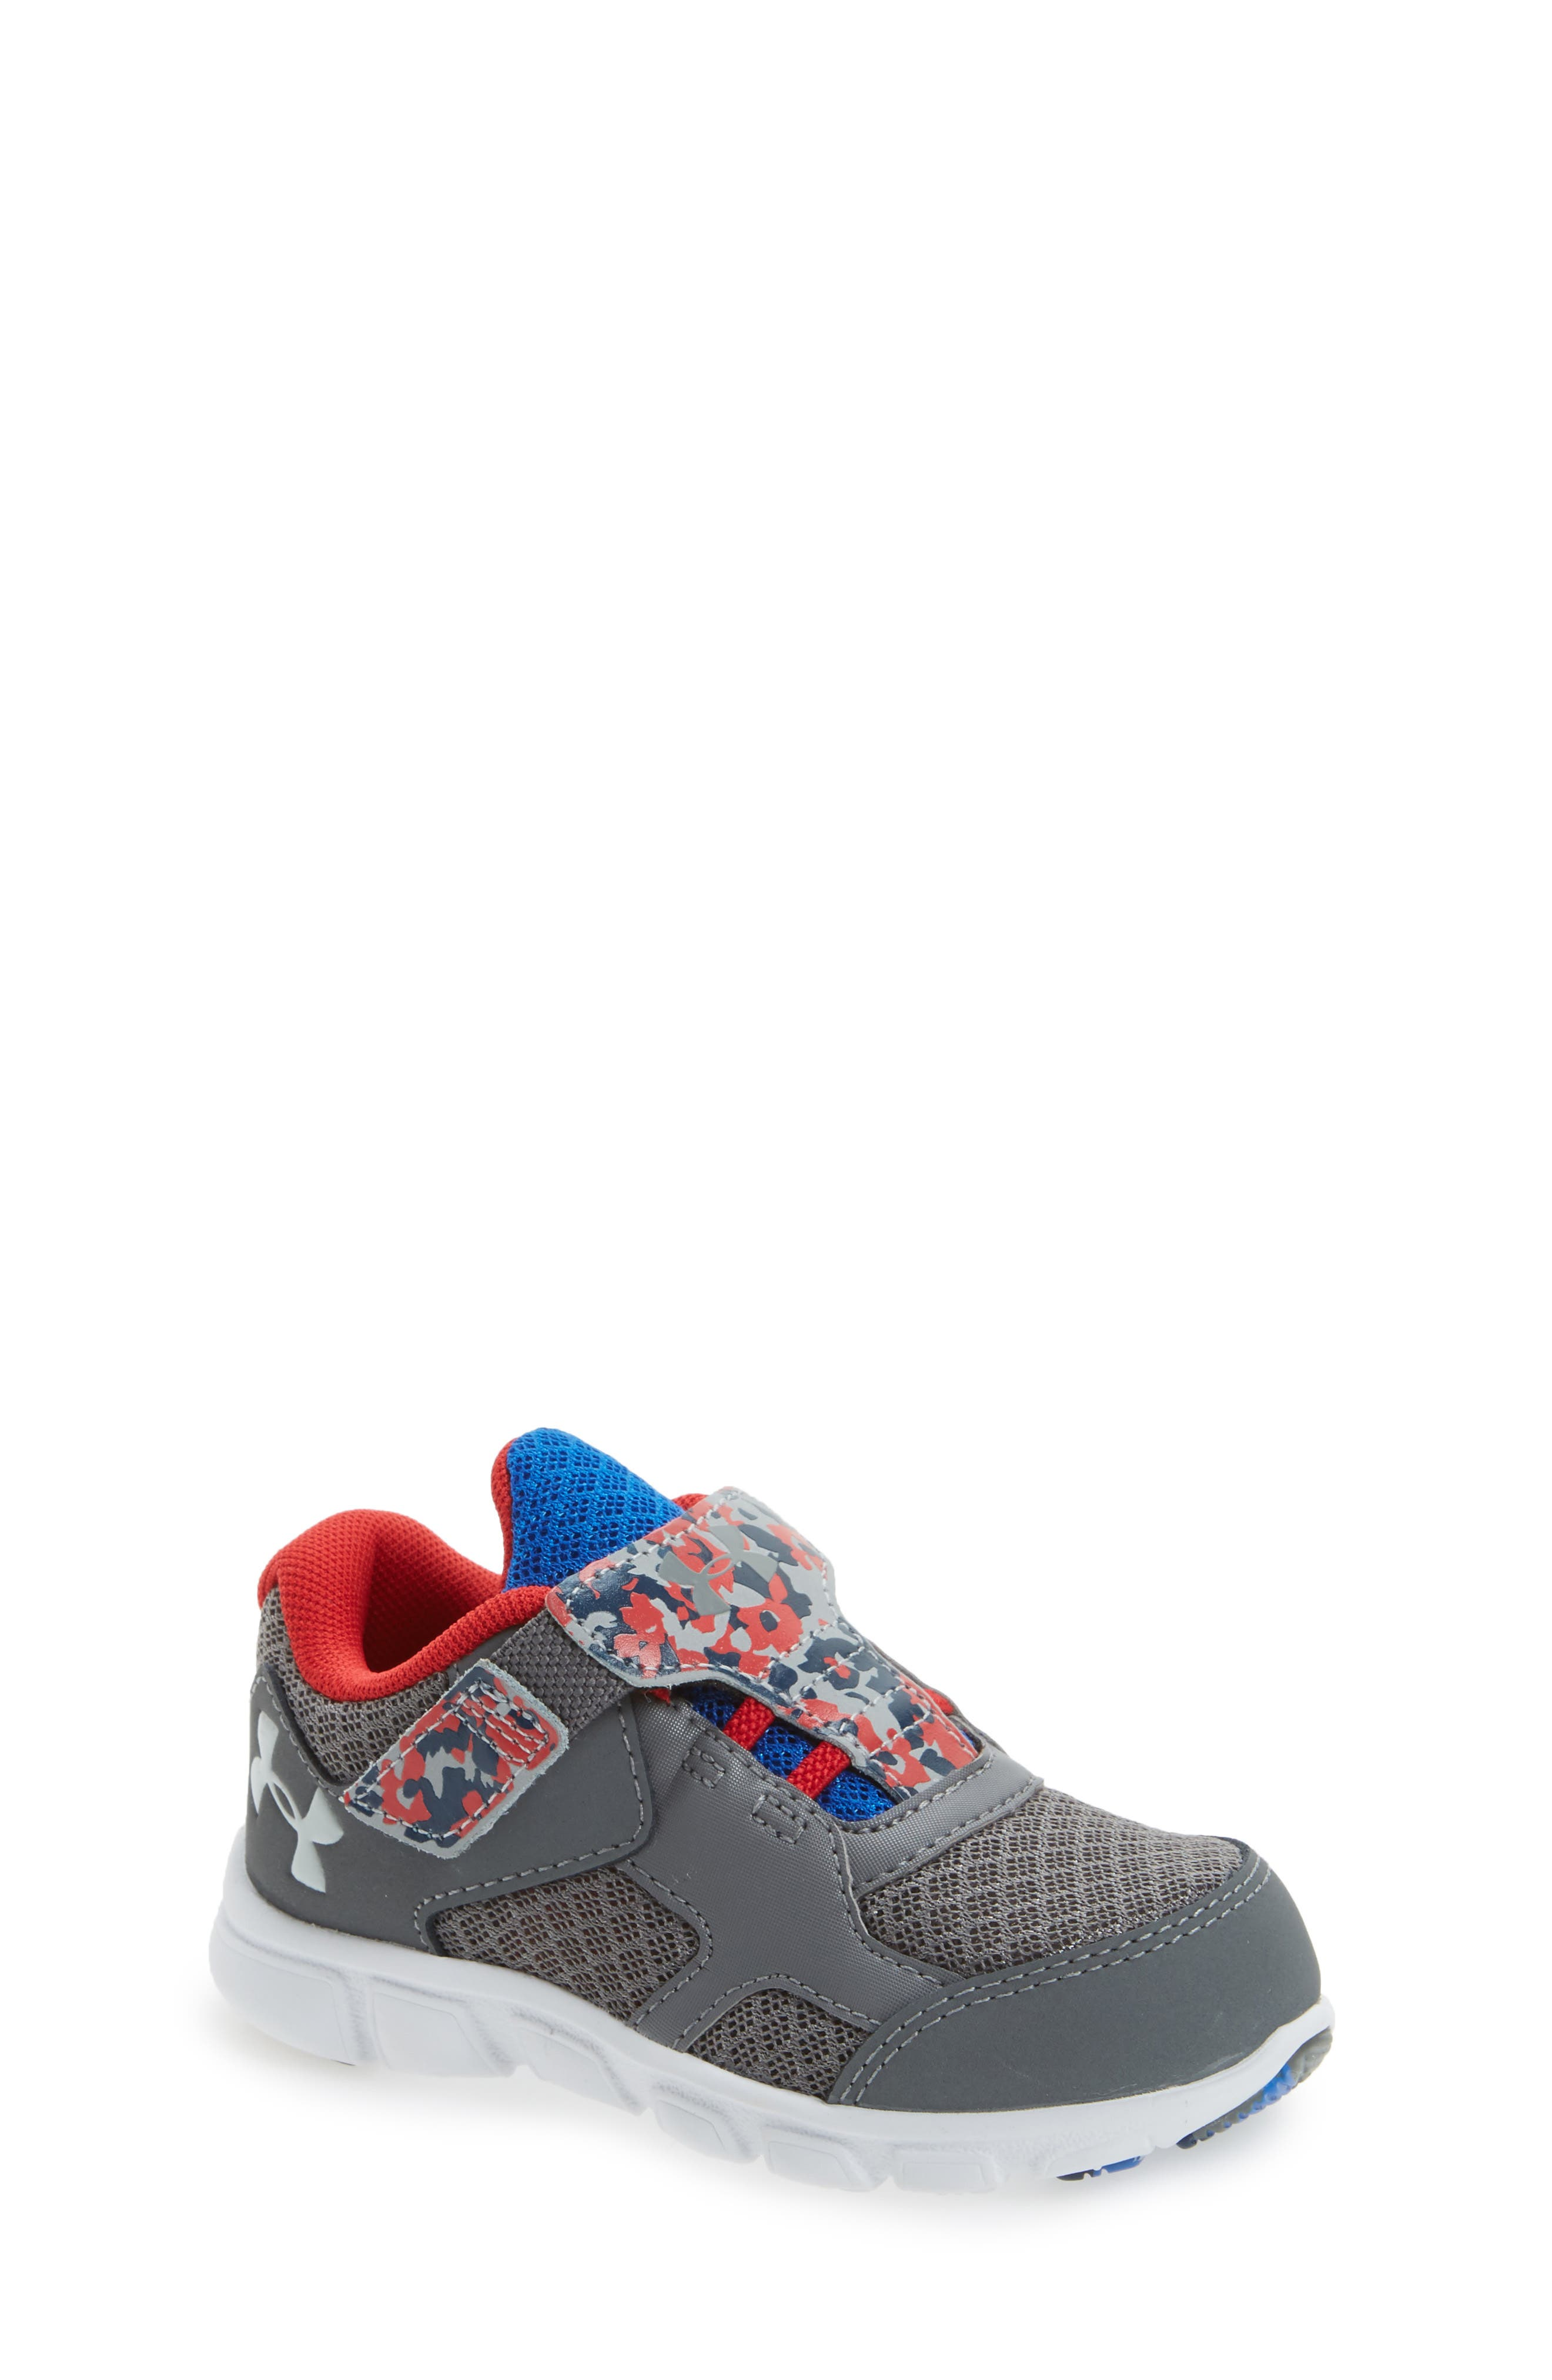 Engage II Athletic Shoe,                         Main,                         color, 020